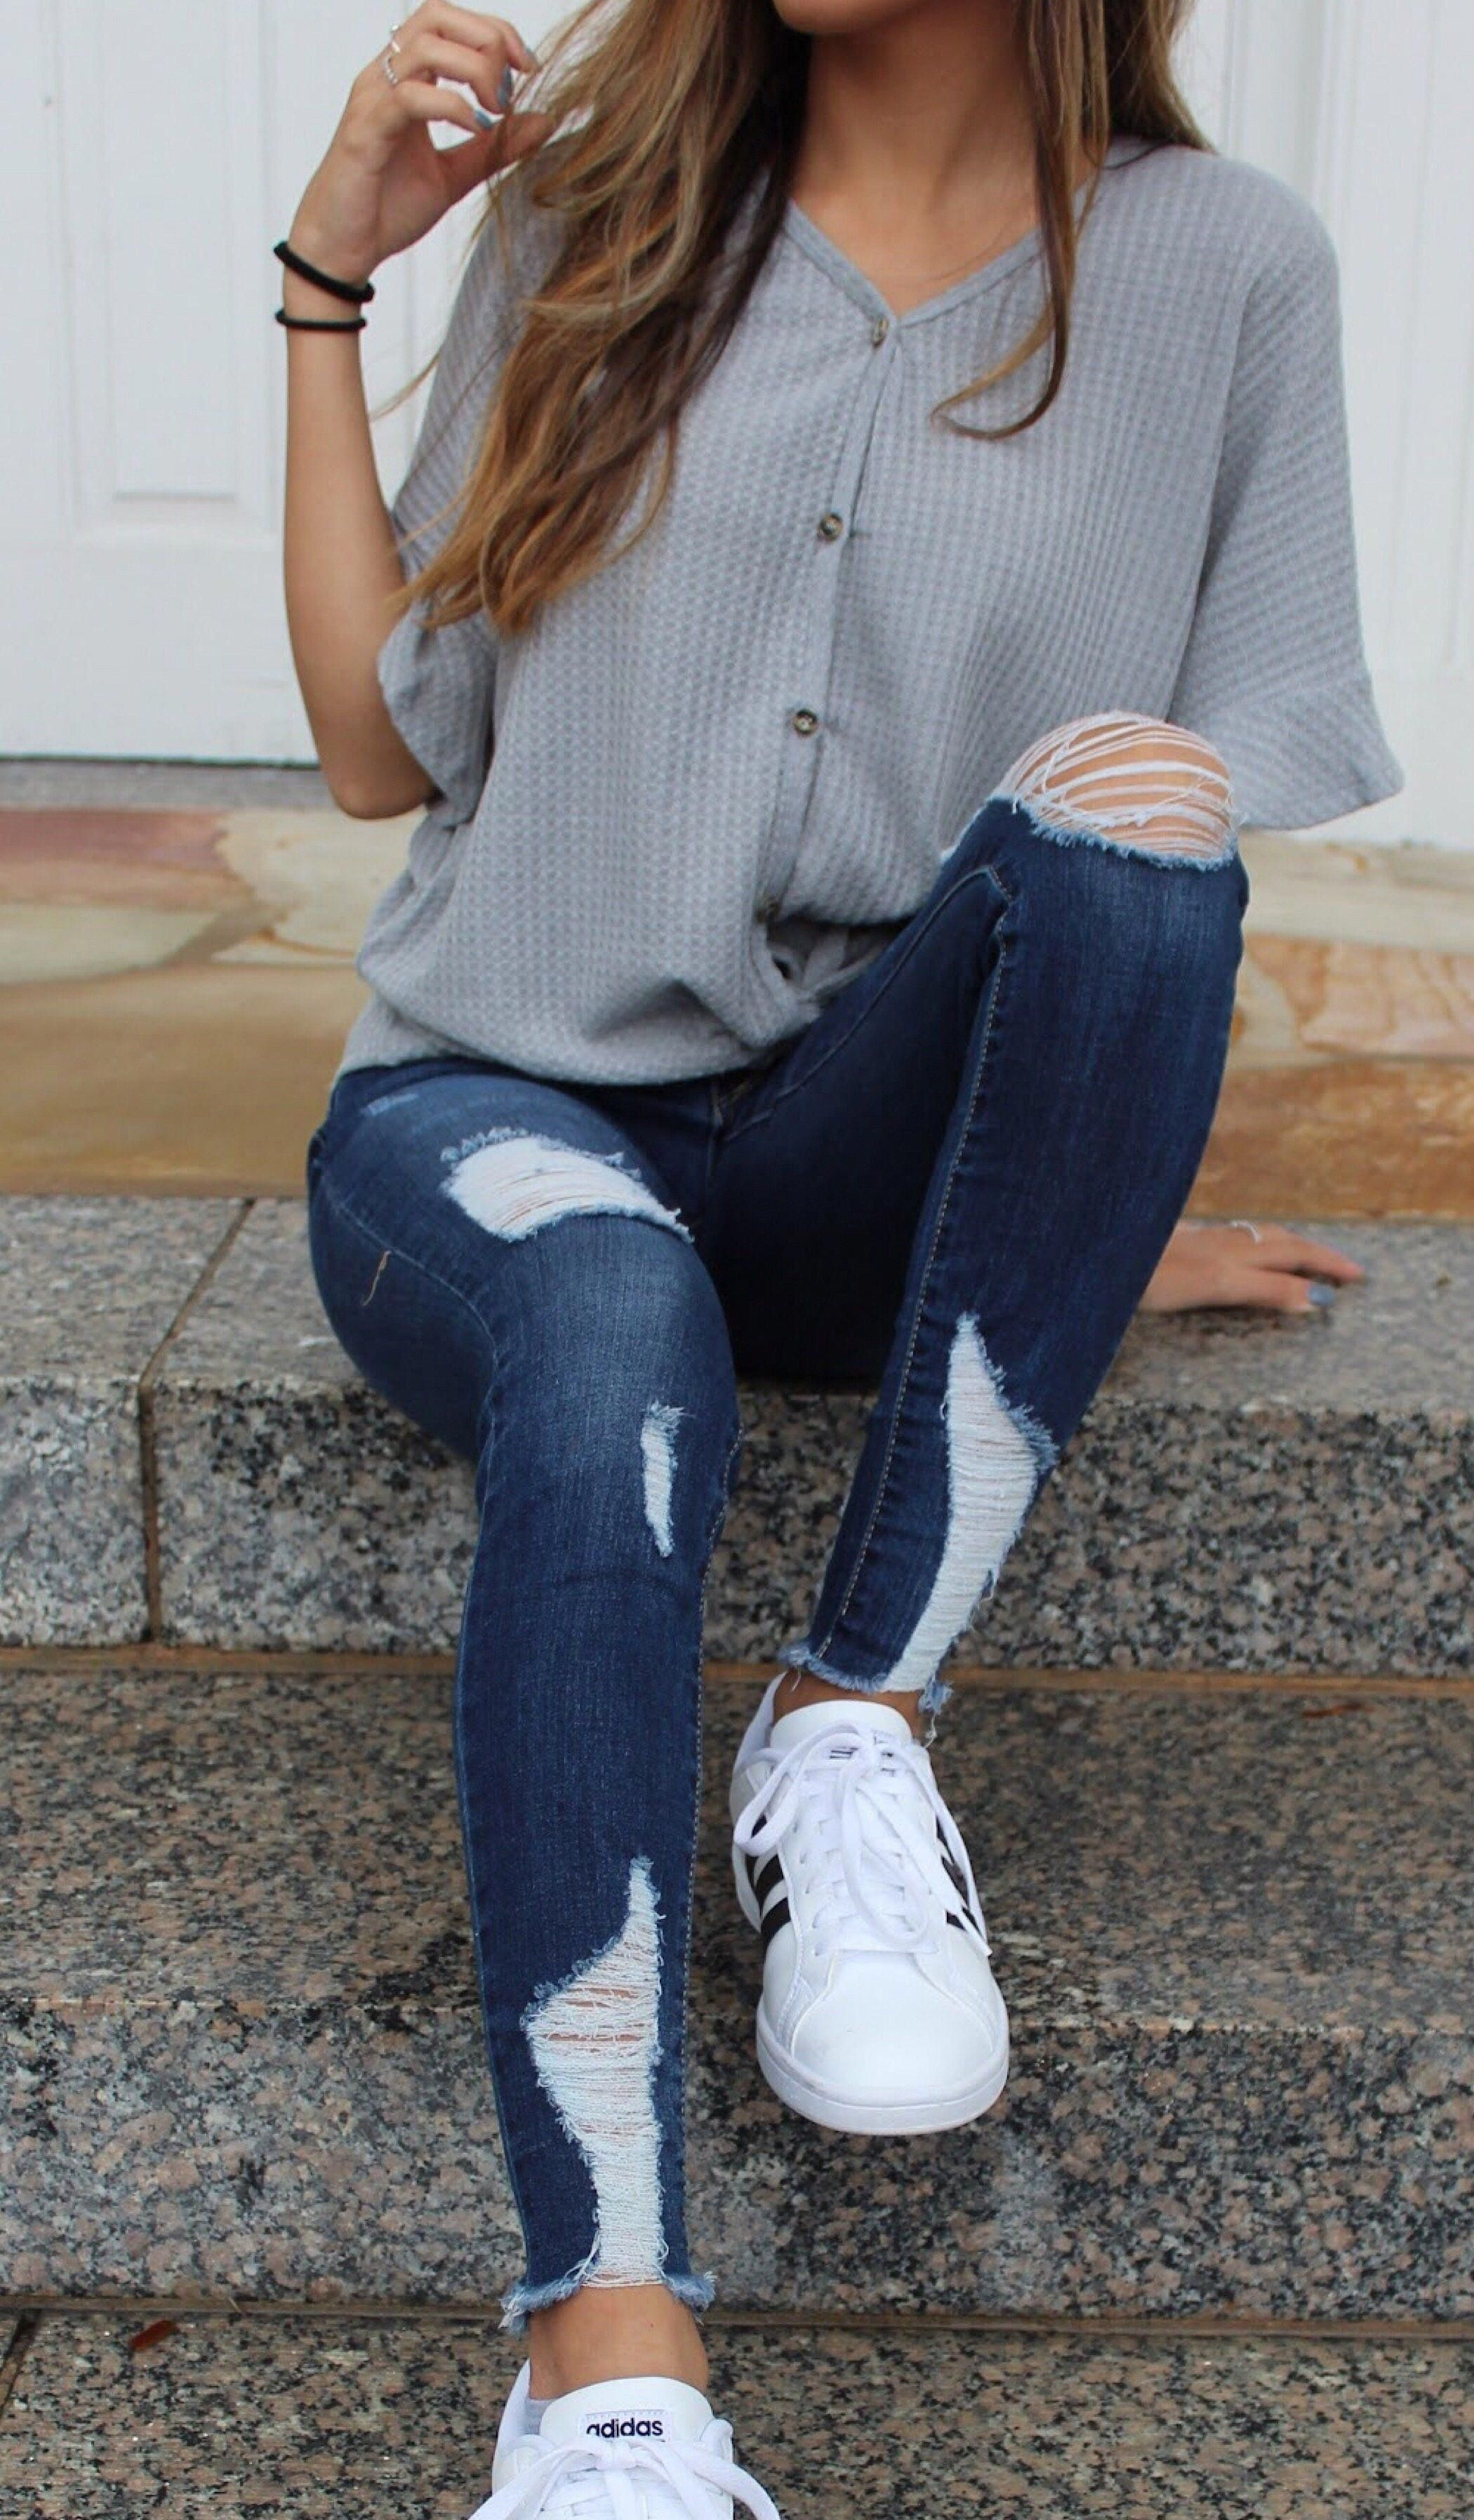 12 Astonishing Ripped Jeans Outfit Ideas - fashionssories.com